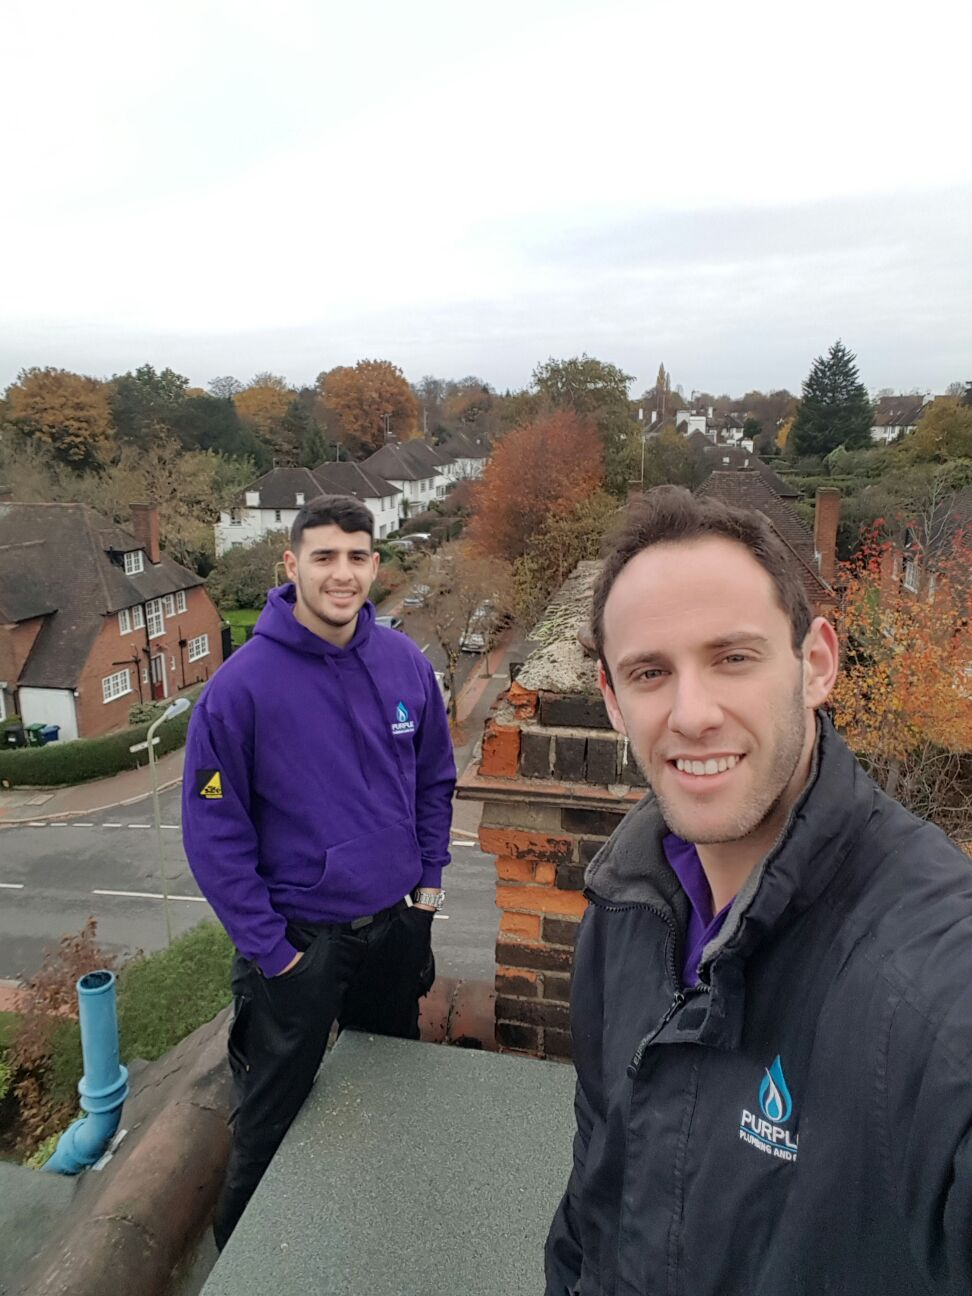 Me and my apprentice. On a roof